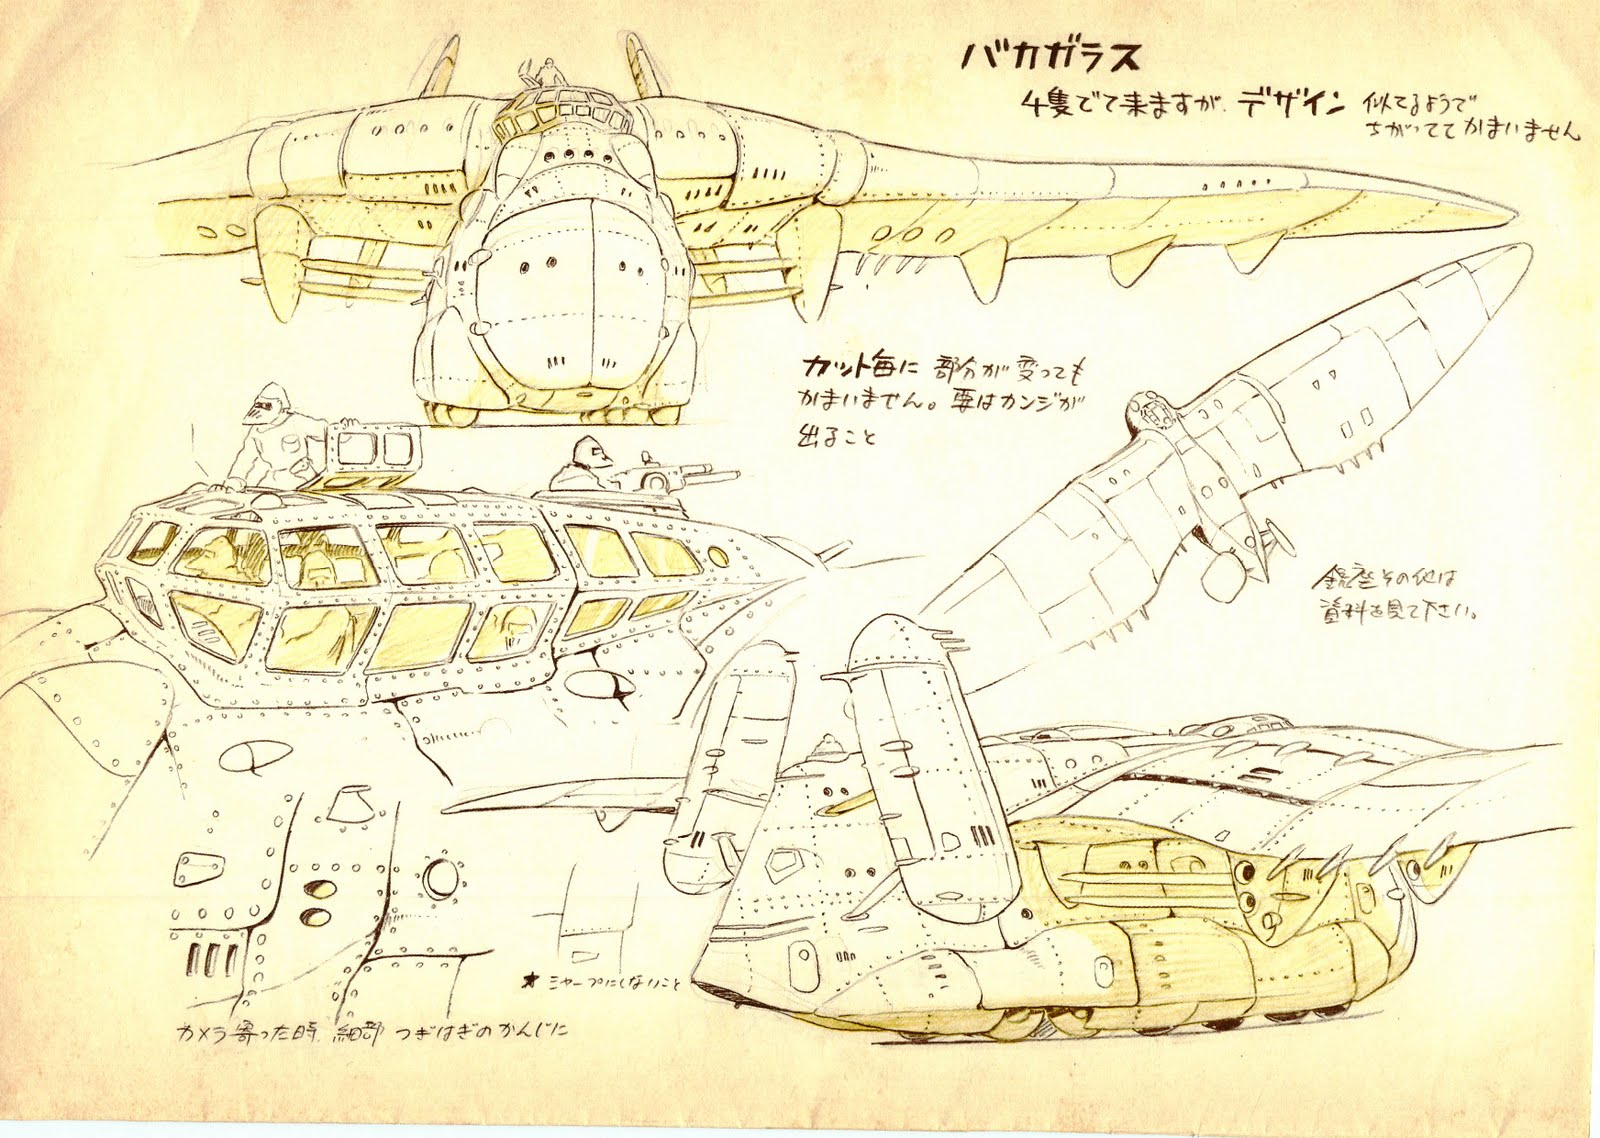 nausicaa_of_the_valley_of_the_wind_concept_art_prop_04.jpg